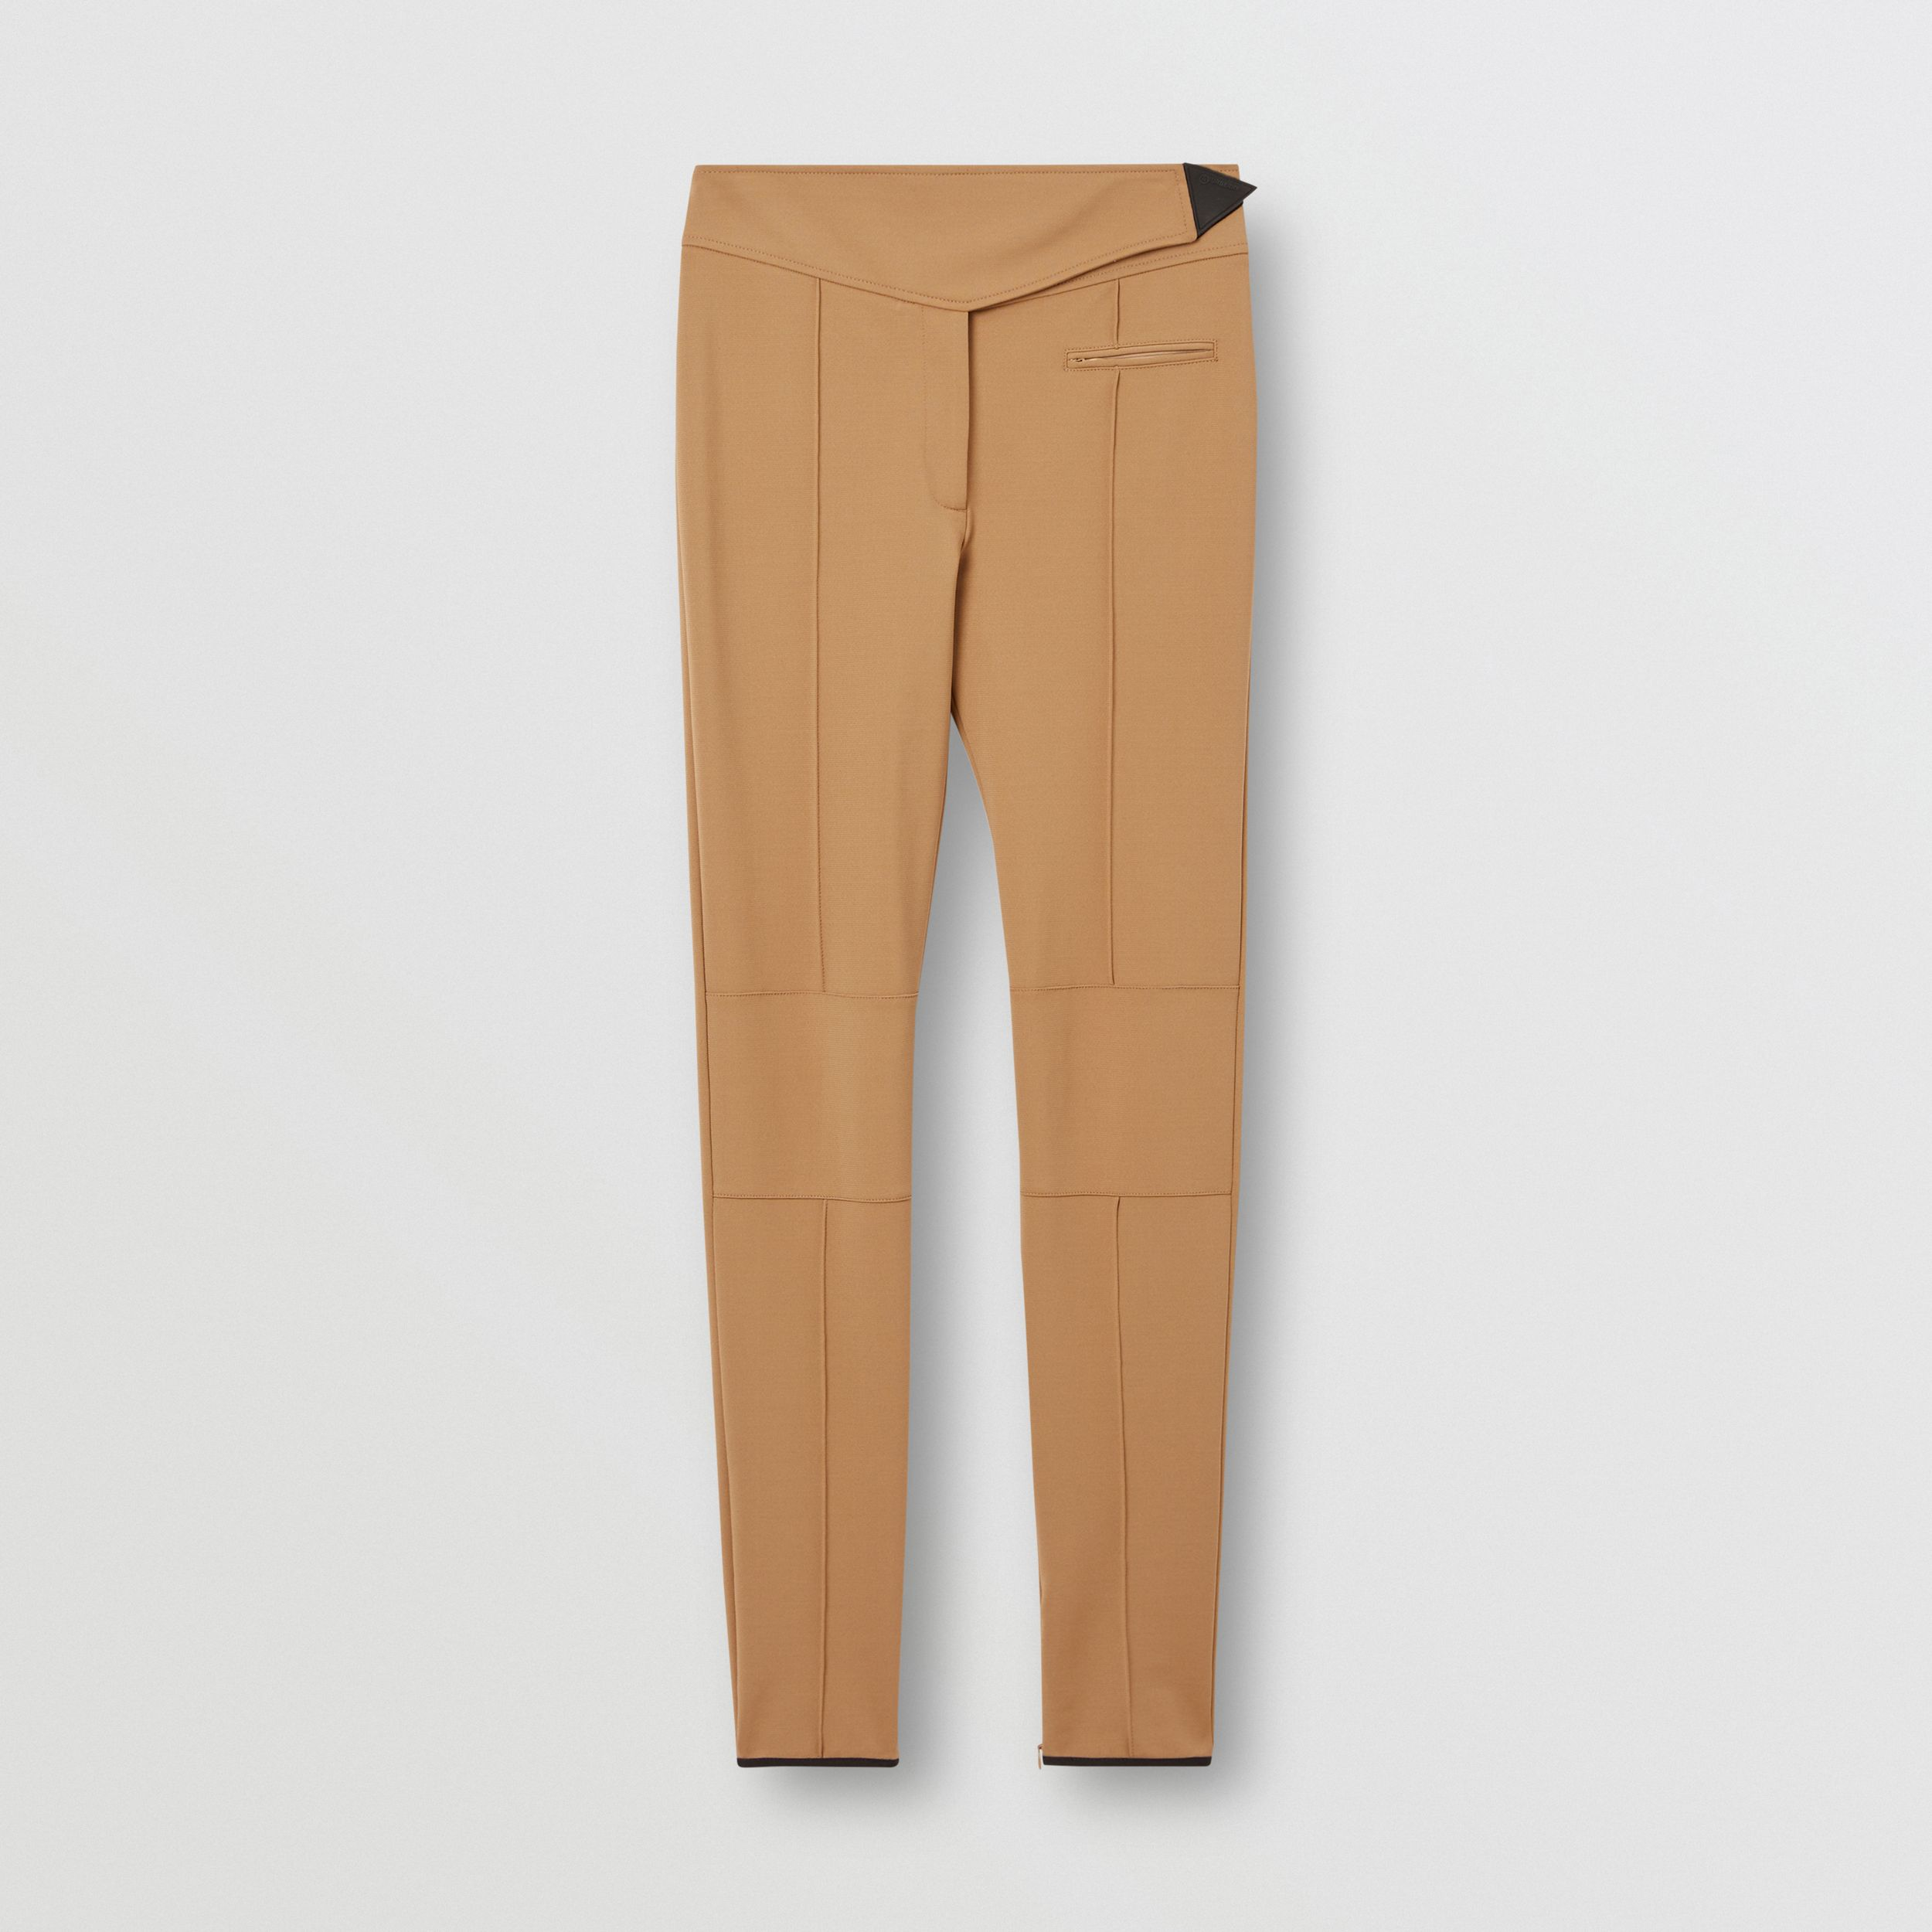 Stretch Crepe Jersey Jodhpurs in Dark Tan - Women | Burberry Canada - 4